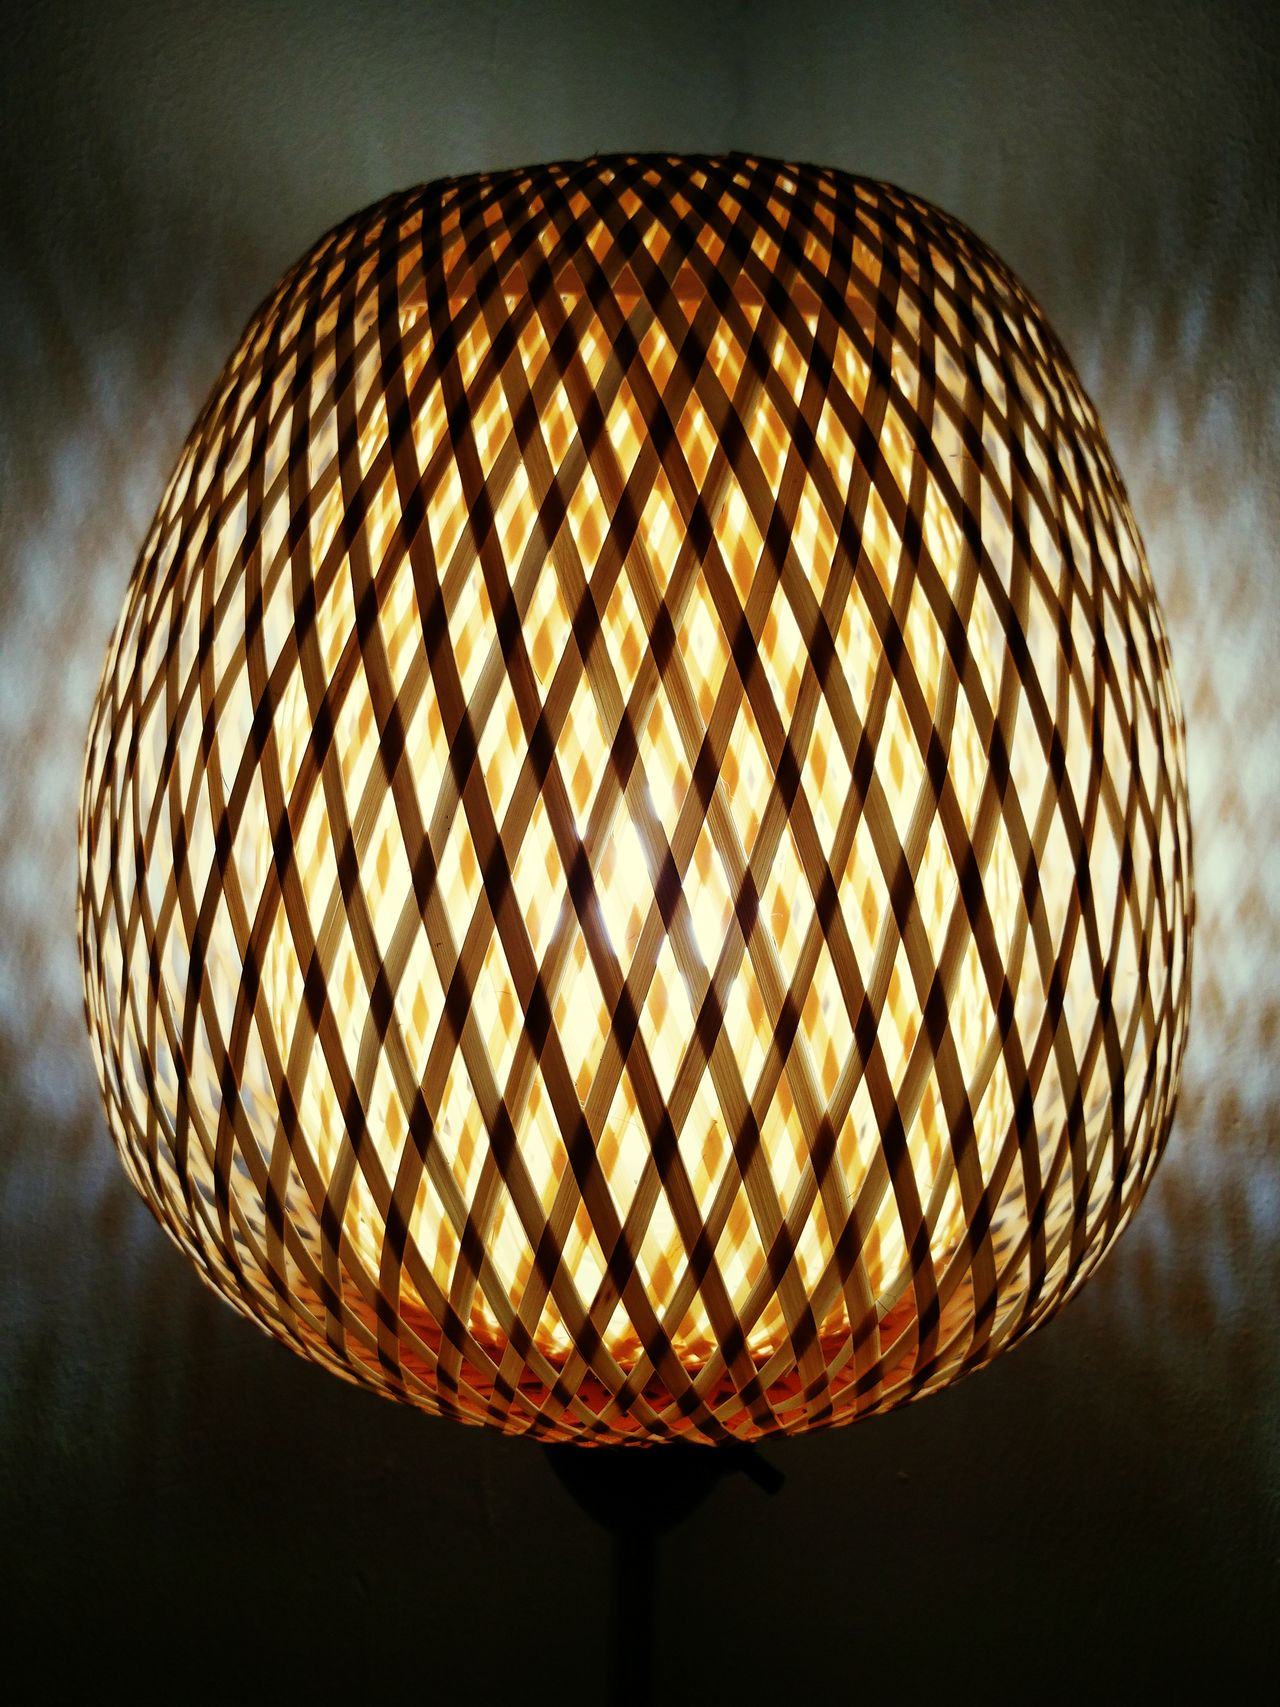 Rattan Rattan Rattan Pattern Lamp Lampshade Furniture Photography White Wall Light And Shadow Light And Shadows Relaxing @ Home Relaxing At Home Patterns & Textures Pattern Texture Shape Design